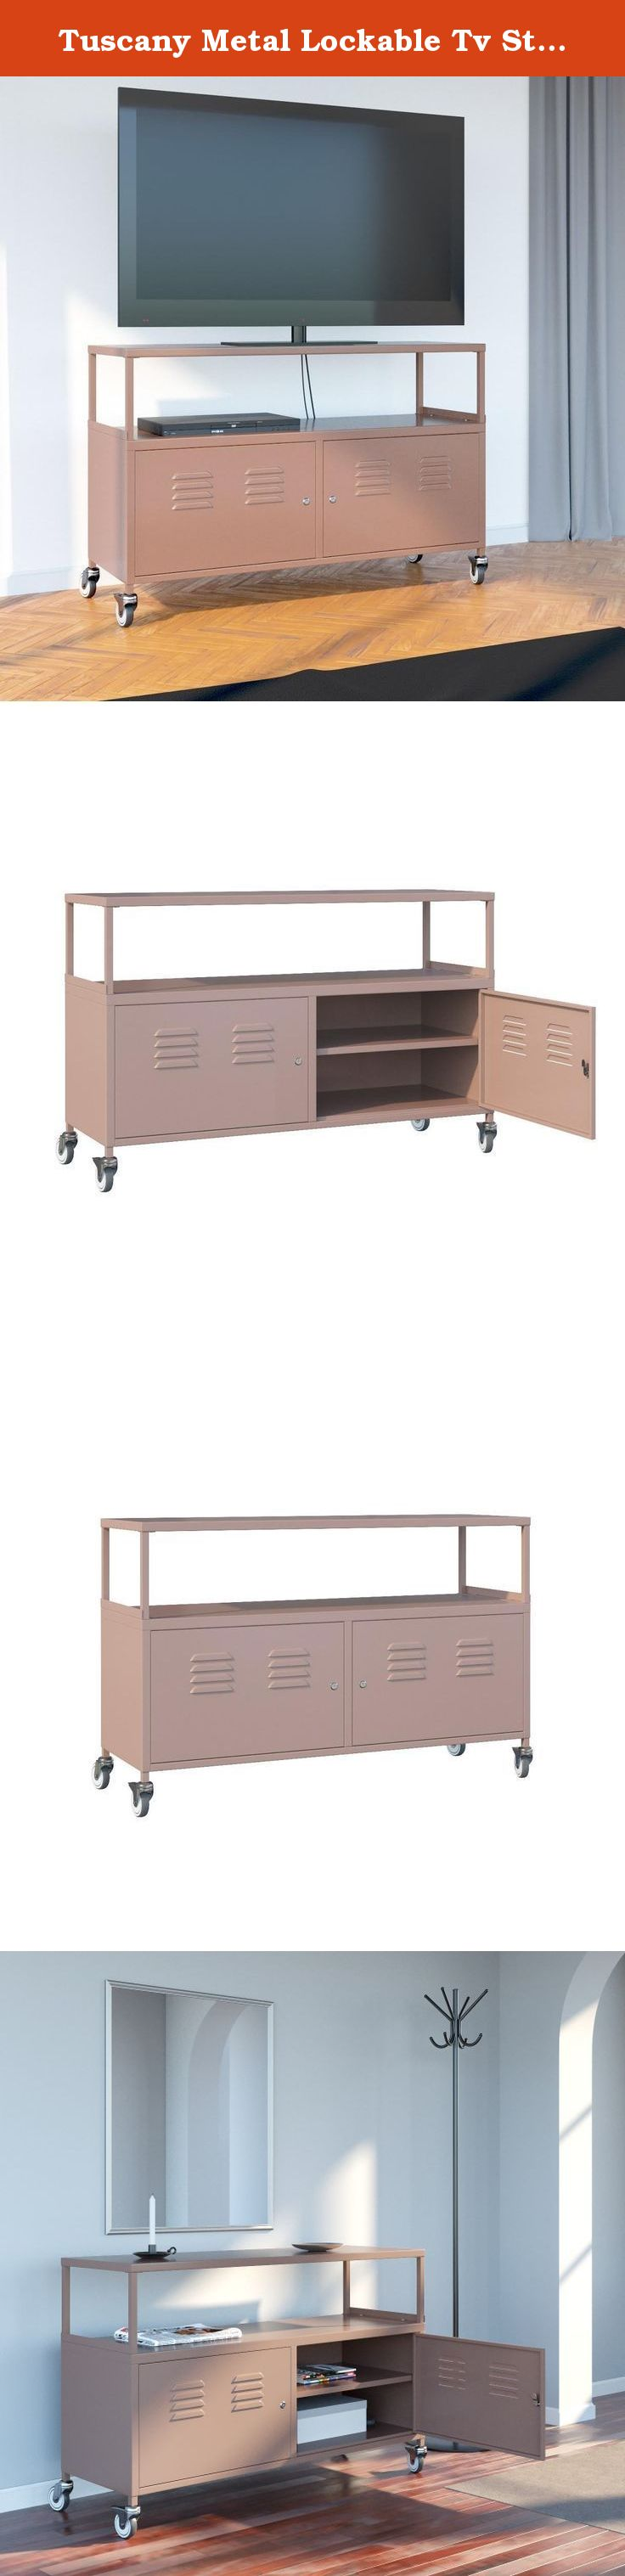 """Tuscany Metal Lockable Tv Stand Cabinet Media Storage With Rolling Casters , Light Brown. •Display your TV on the eye-catching Tuscany TV Stand Cabinet. •Vibrant white finish will bring brightness to your space. •Lockable doors help you to keep your personal stuff in safe. •Great for dorm room and shared apartments. •For easy assembly please check our video on youtube ( Tuscany Metal Cabinet Basic Assembly Video ) •Dimensions of Tv Cabinet Length: 46.5"""" Depth: 15.75"""" Height: 31""""."""